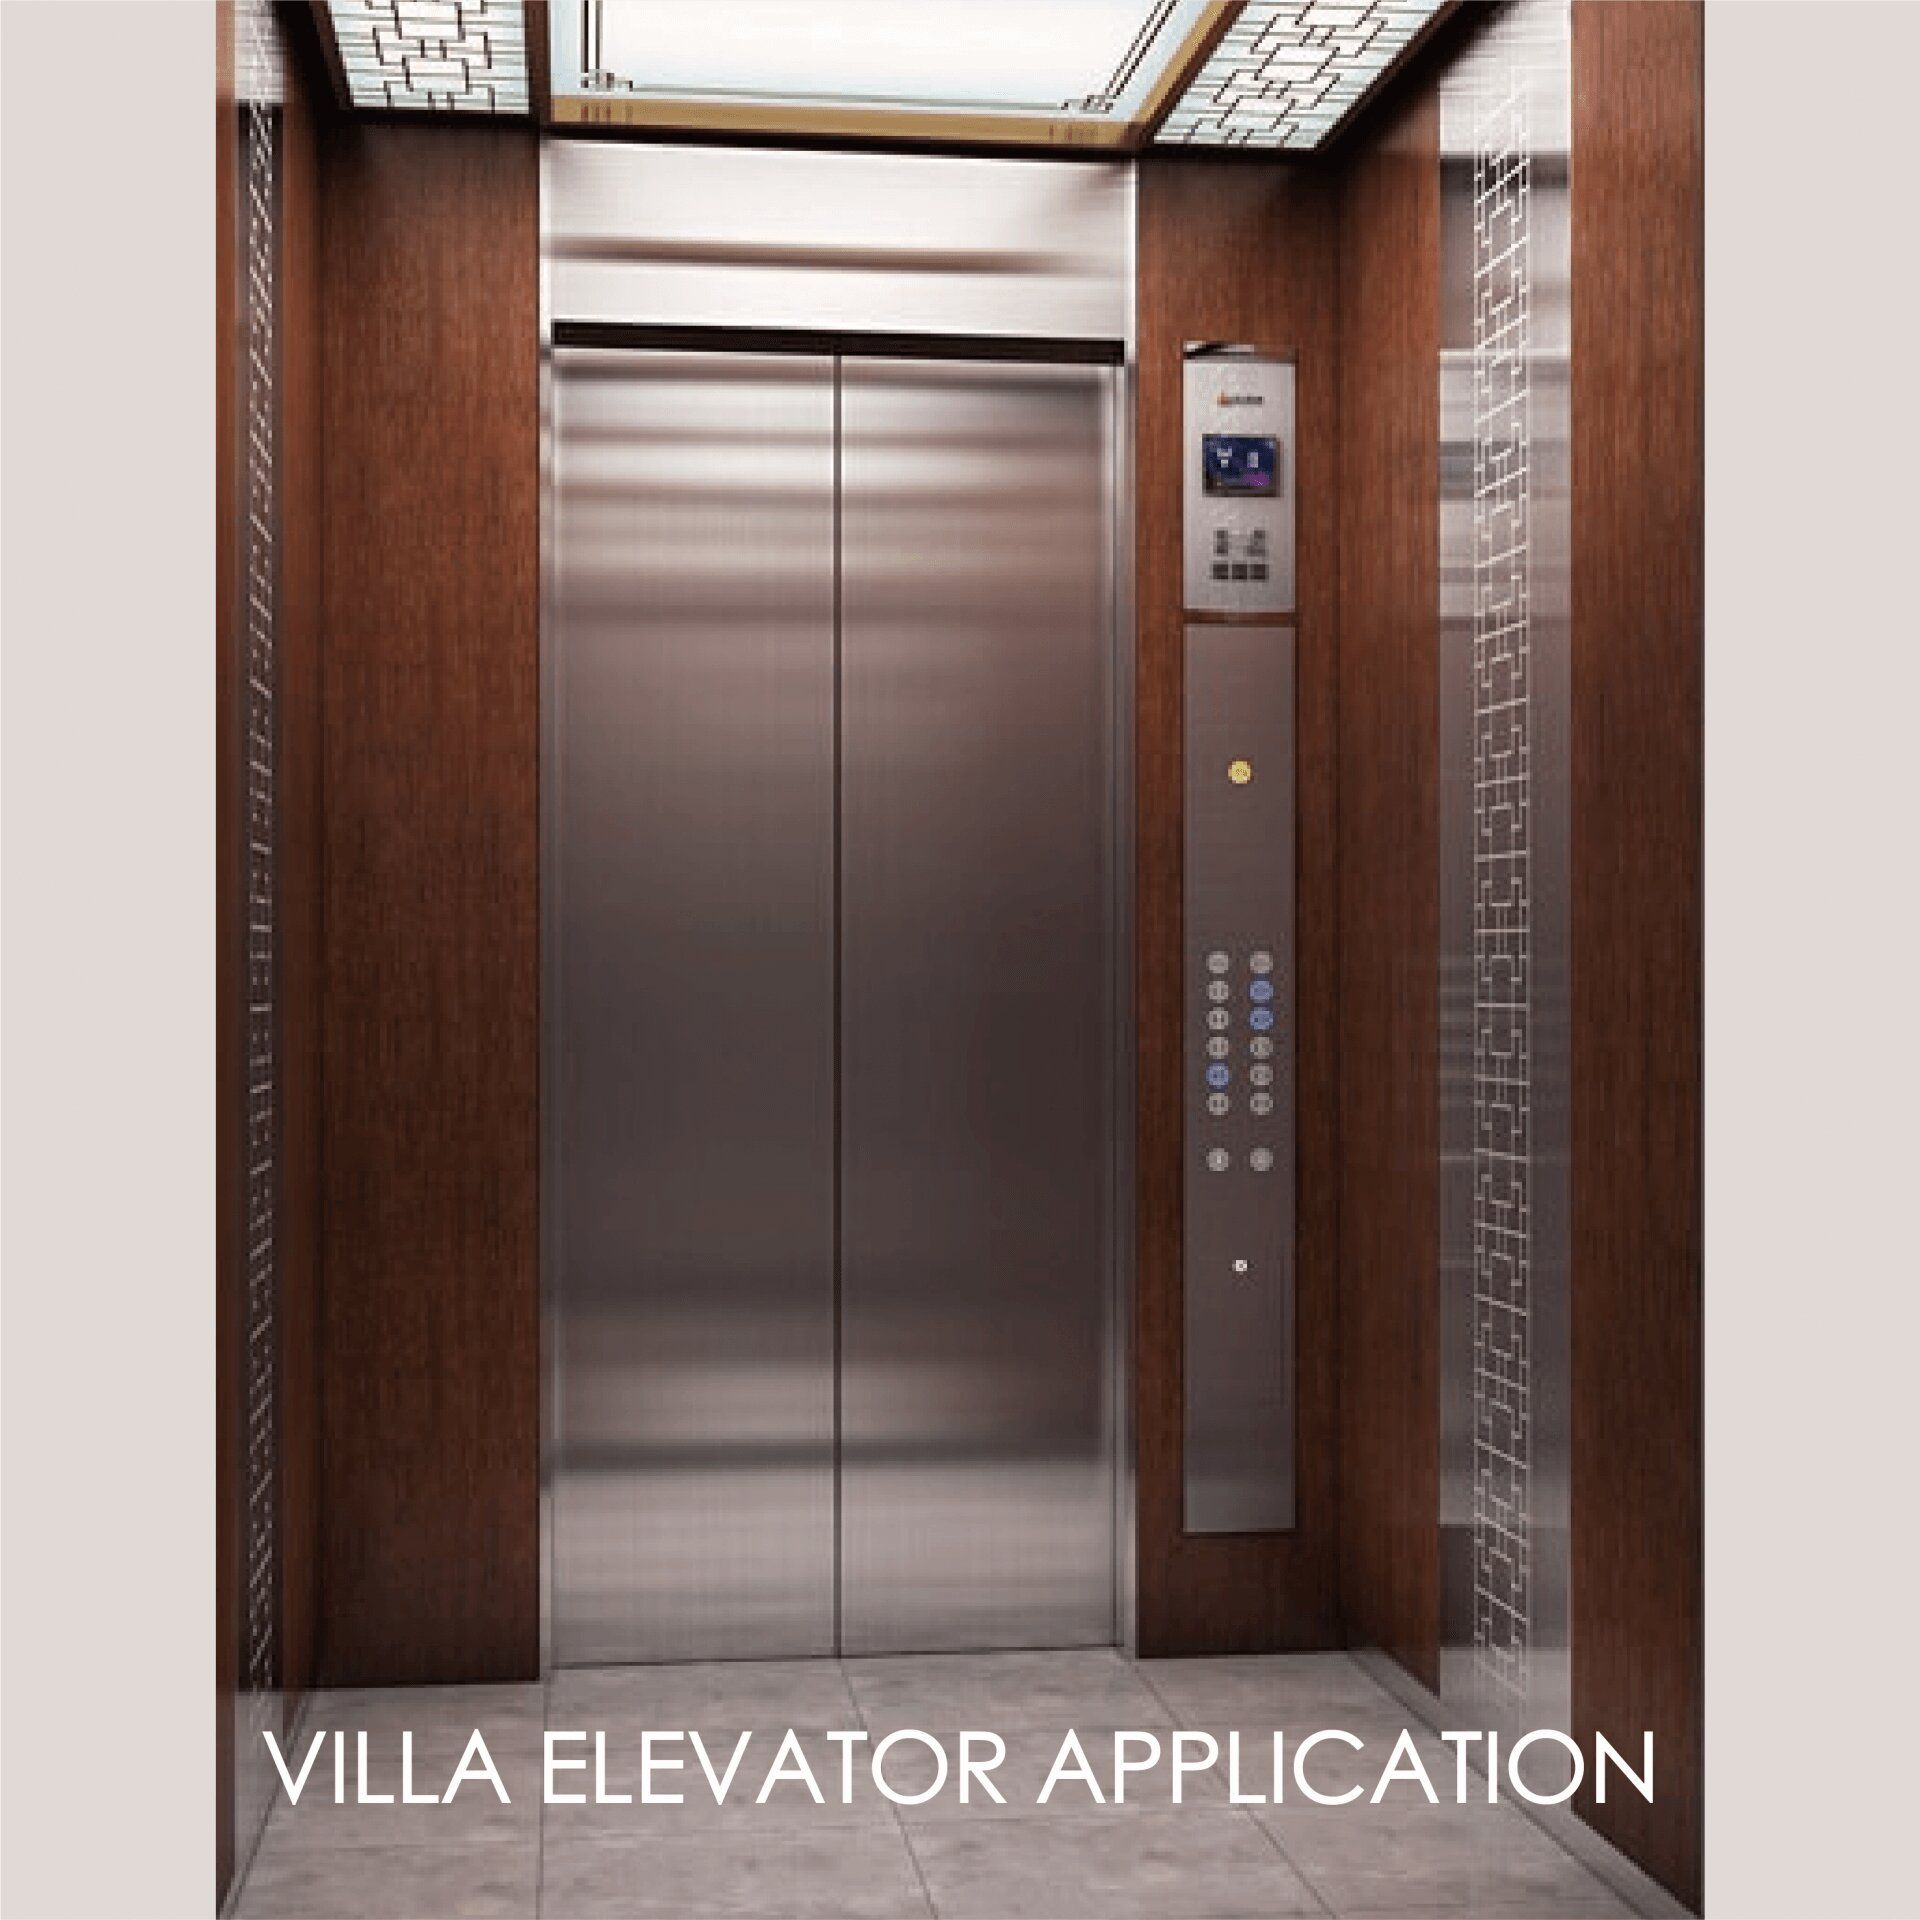 The use of coated metal to decorate the elevator door panel can increase the aesthetics and durability